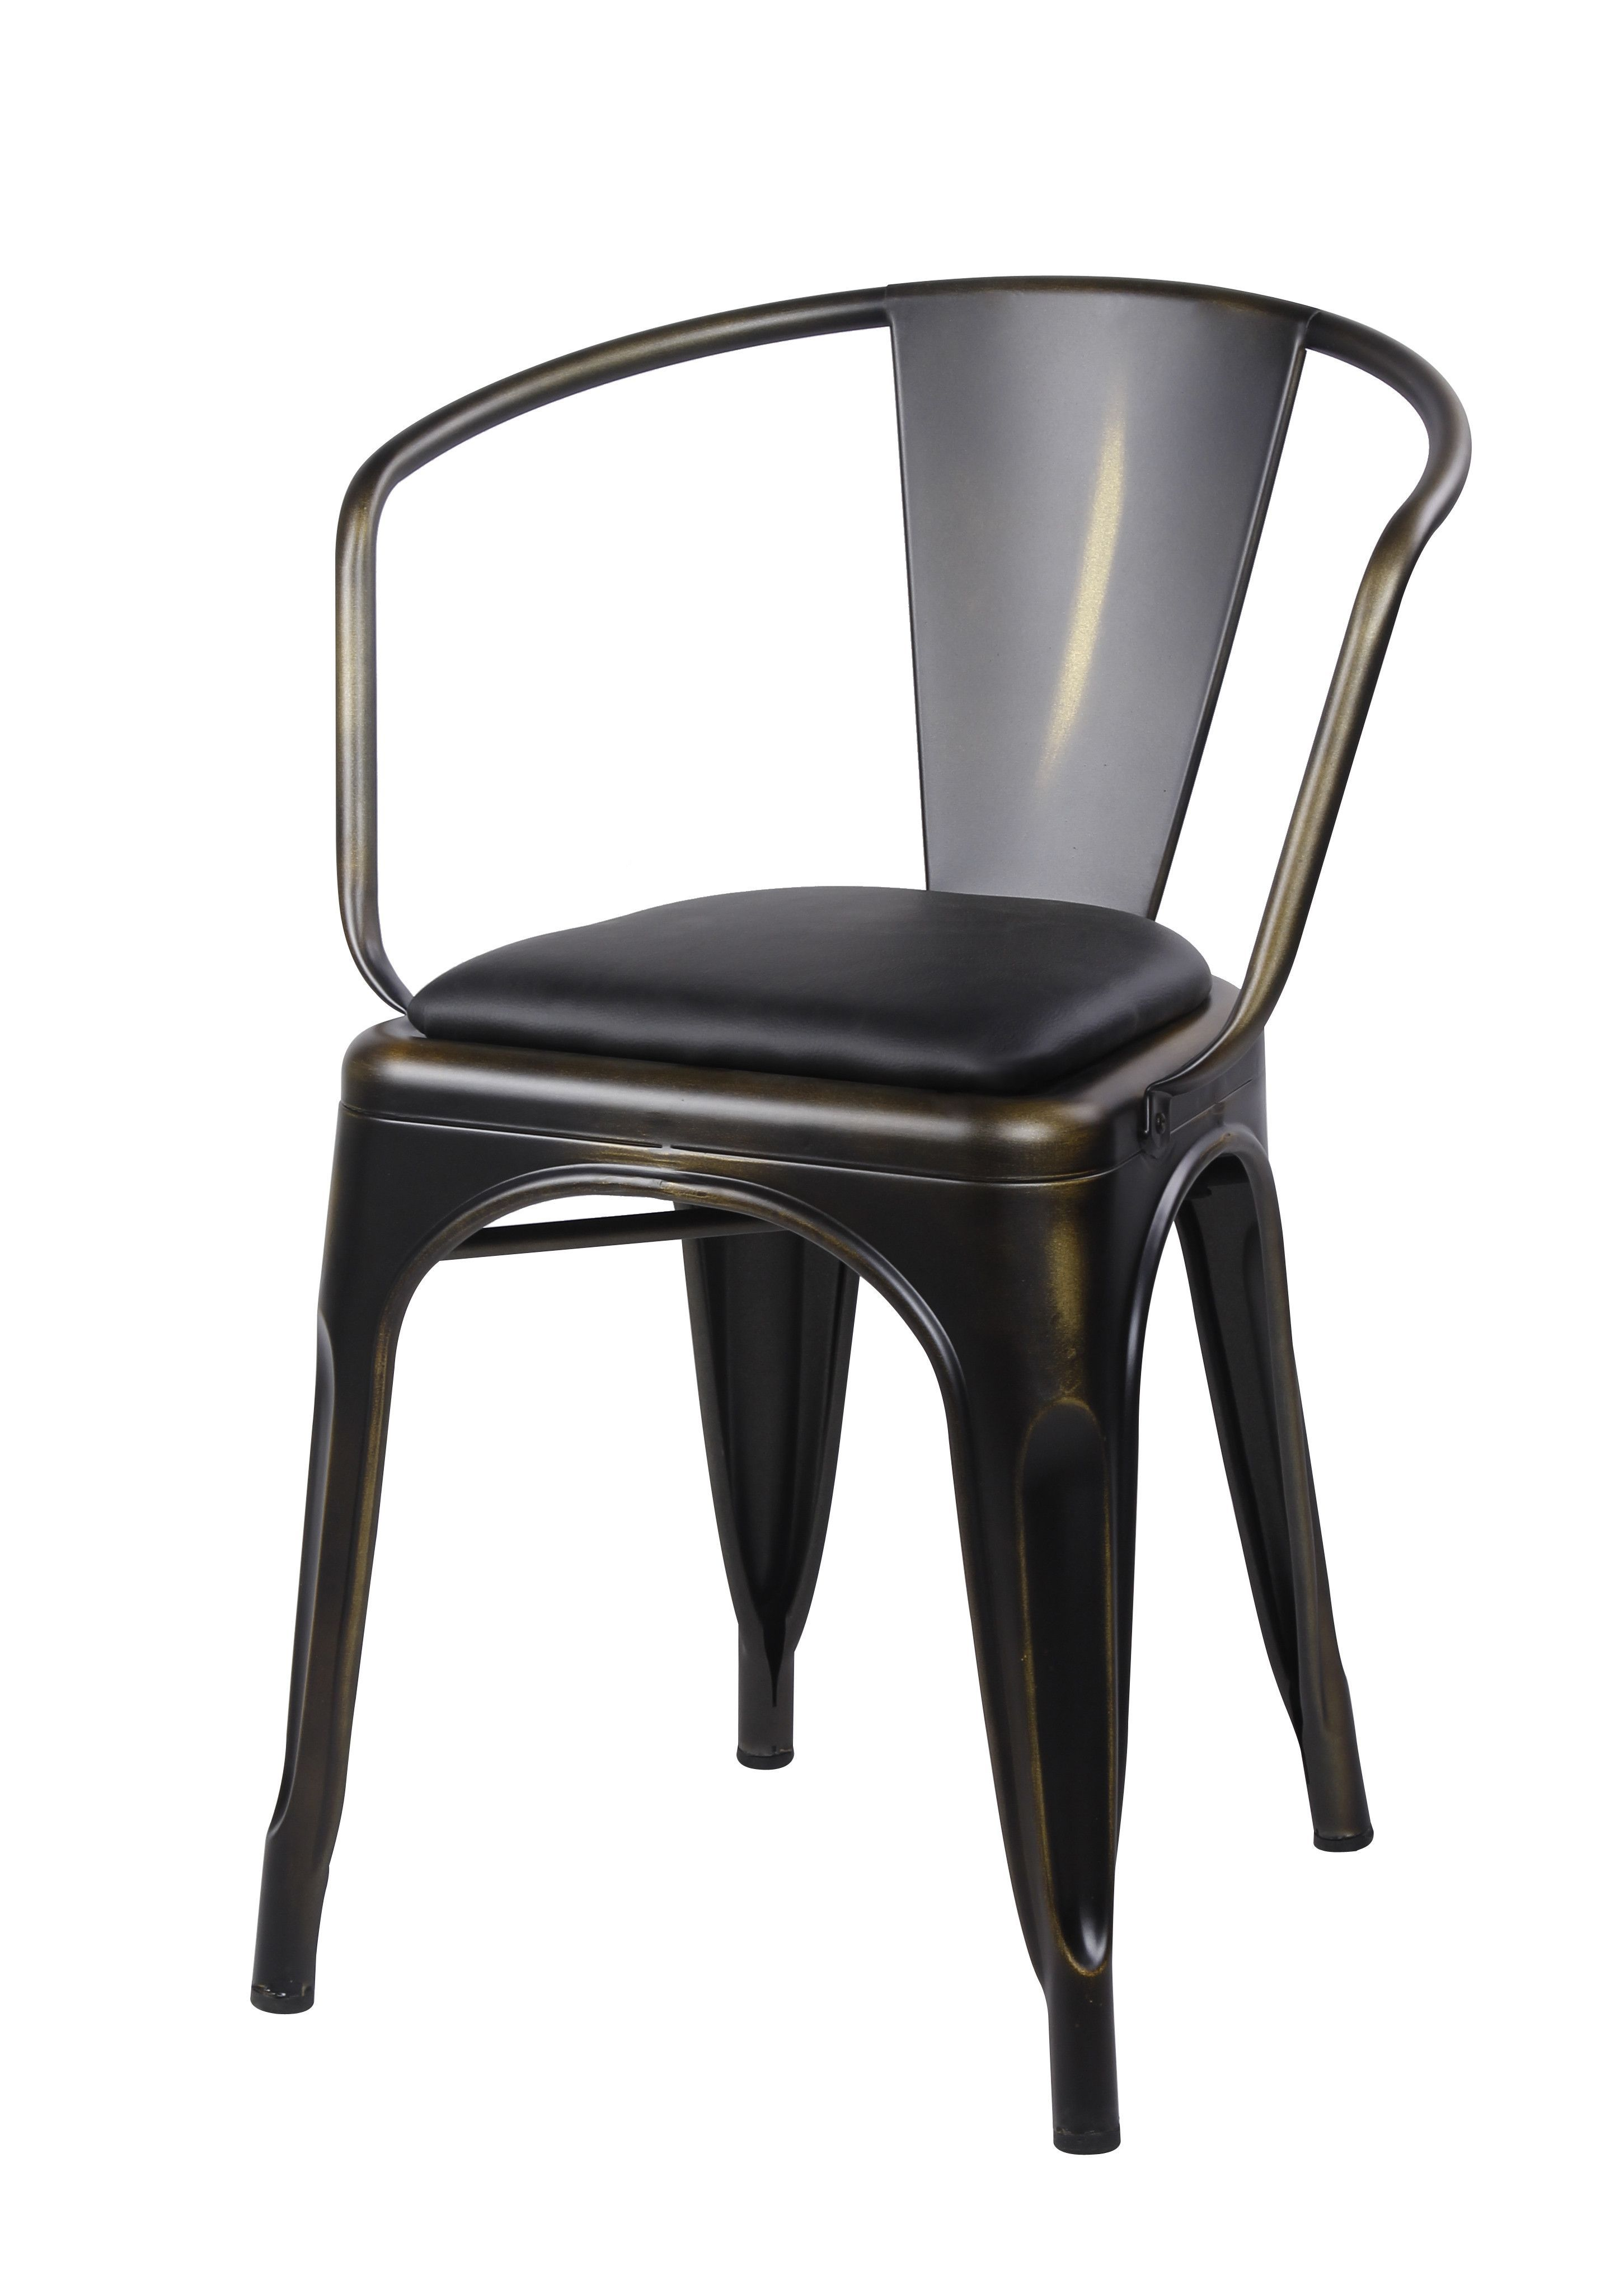 Metal Dining Chairs with Back - Leather Cushion Seat | Pinterest ...